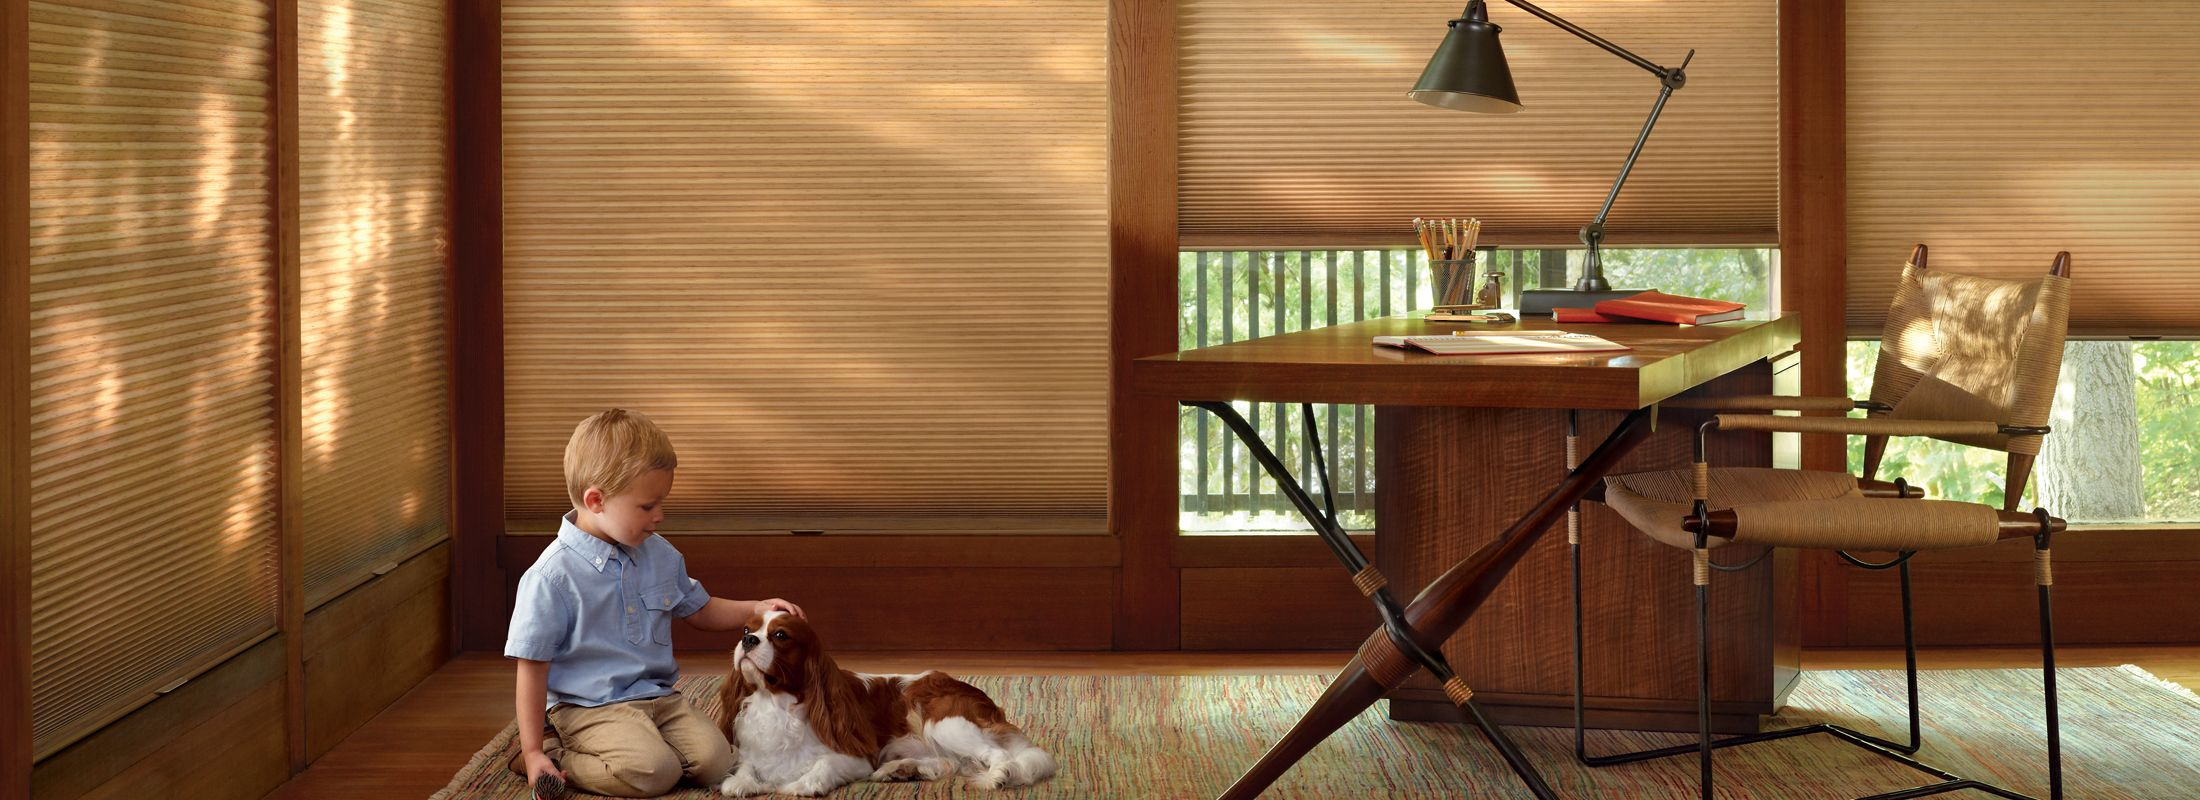 Cellular shades in India Silk Tiger Eye - Duette